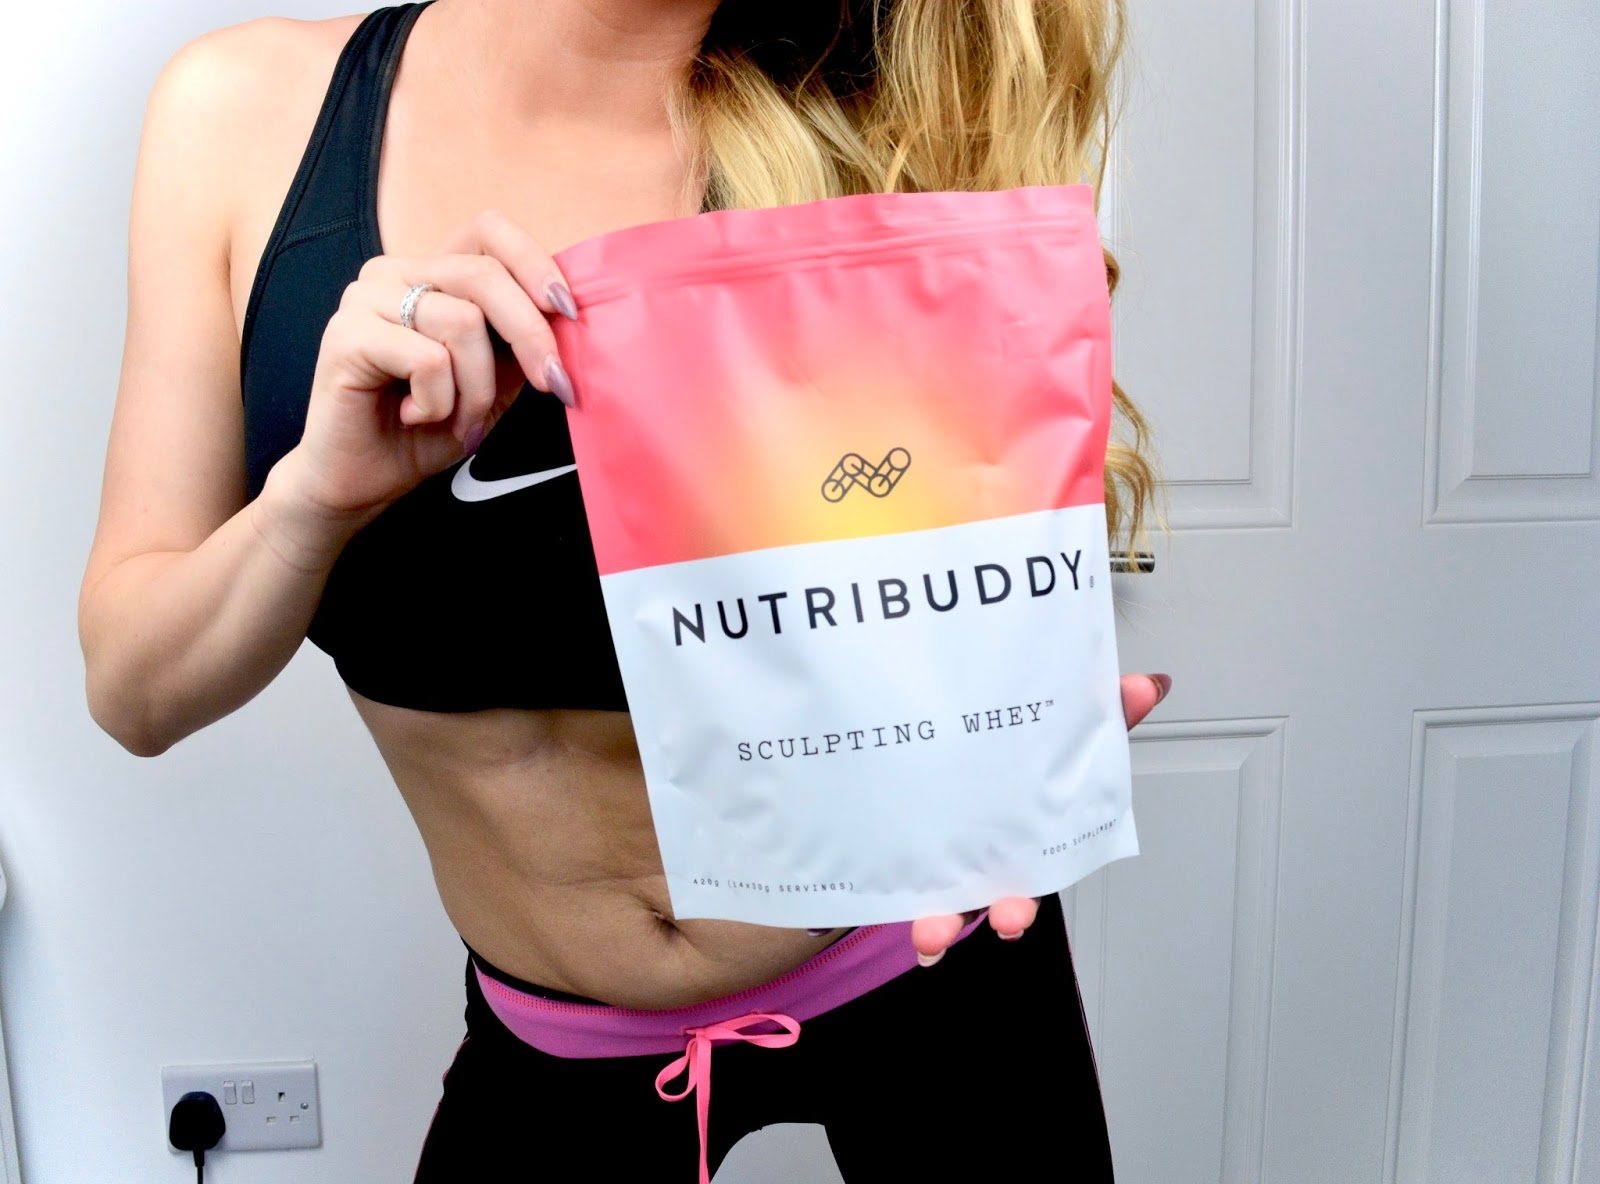 Nutribuddy, Nutribuddy Weight Loss Kit, Weight Loss, Healthy Eating, Health and Fitness, Health Shakes, Weight Loss, Nutribuddy Before and After, Lifestyle